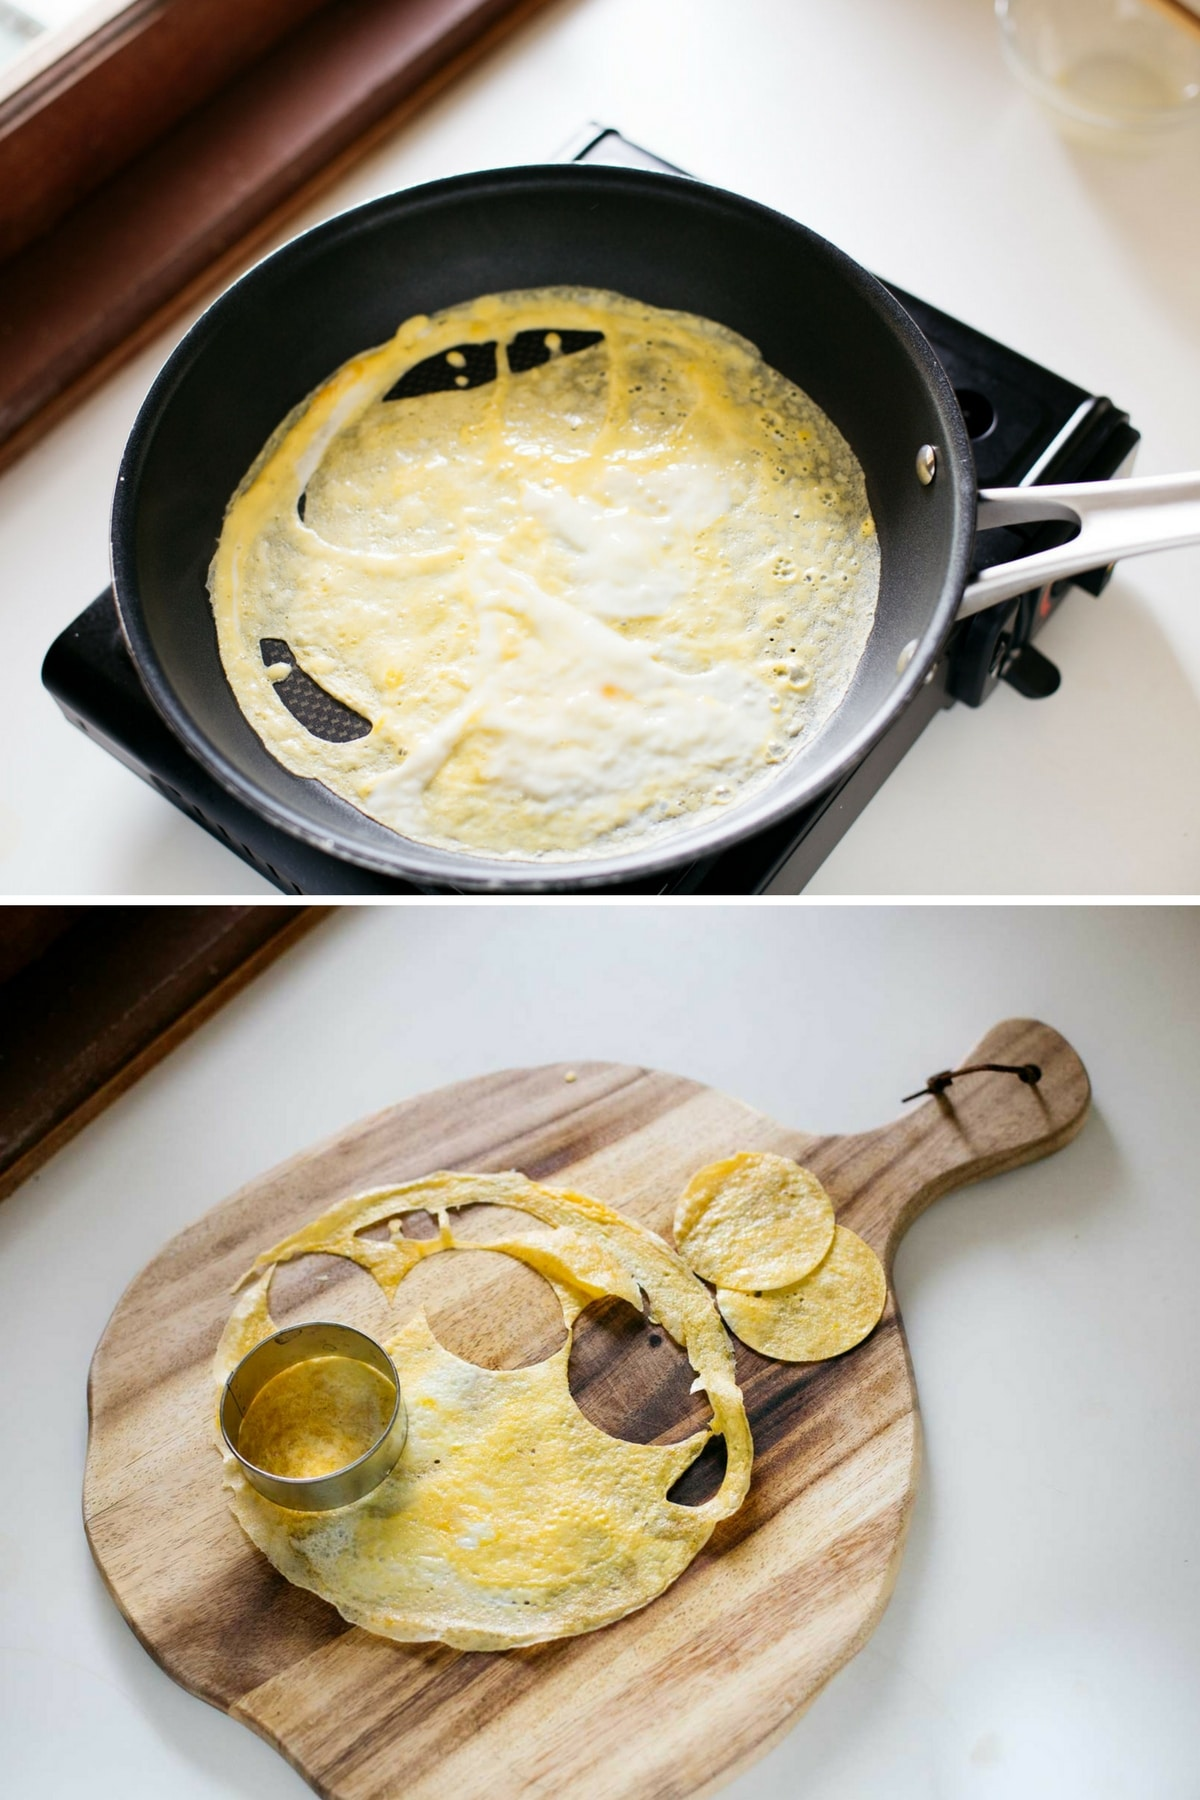 flat fried egg in a frying pan and cut out fried egg with a cookie cutter